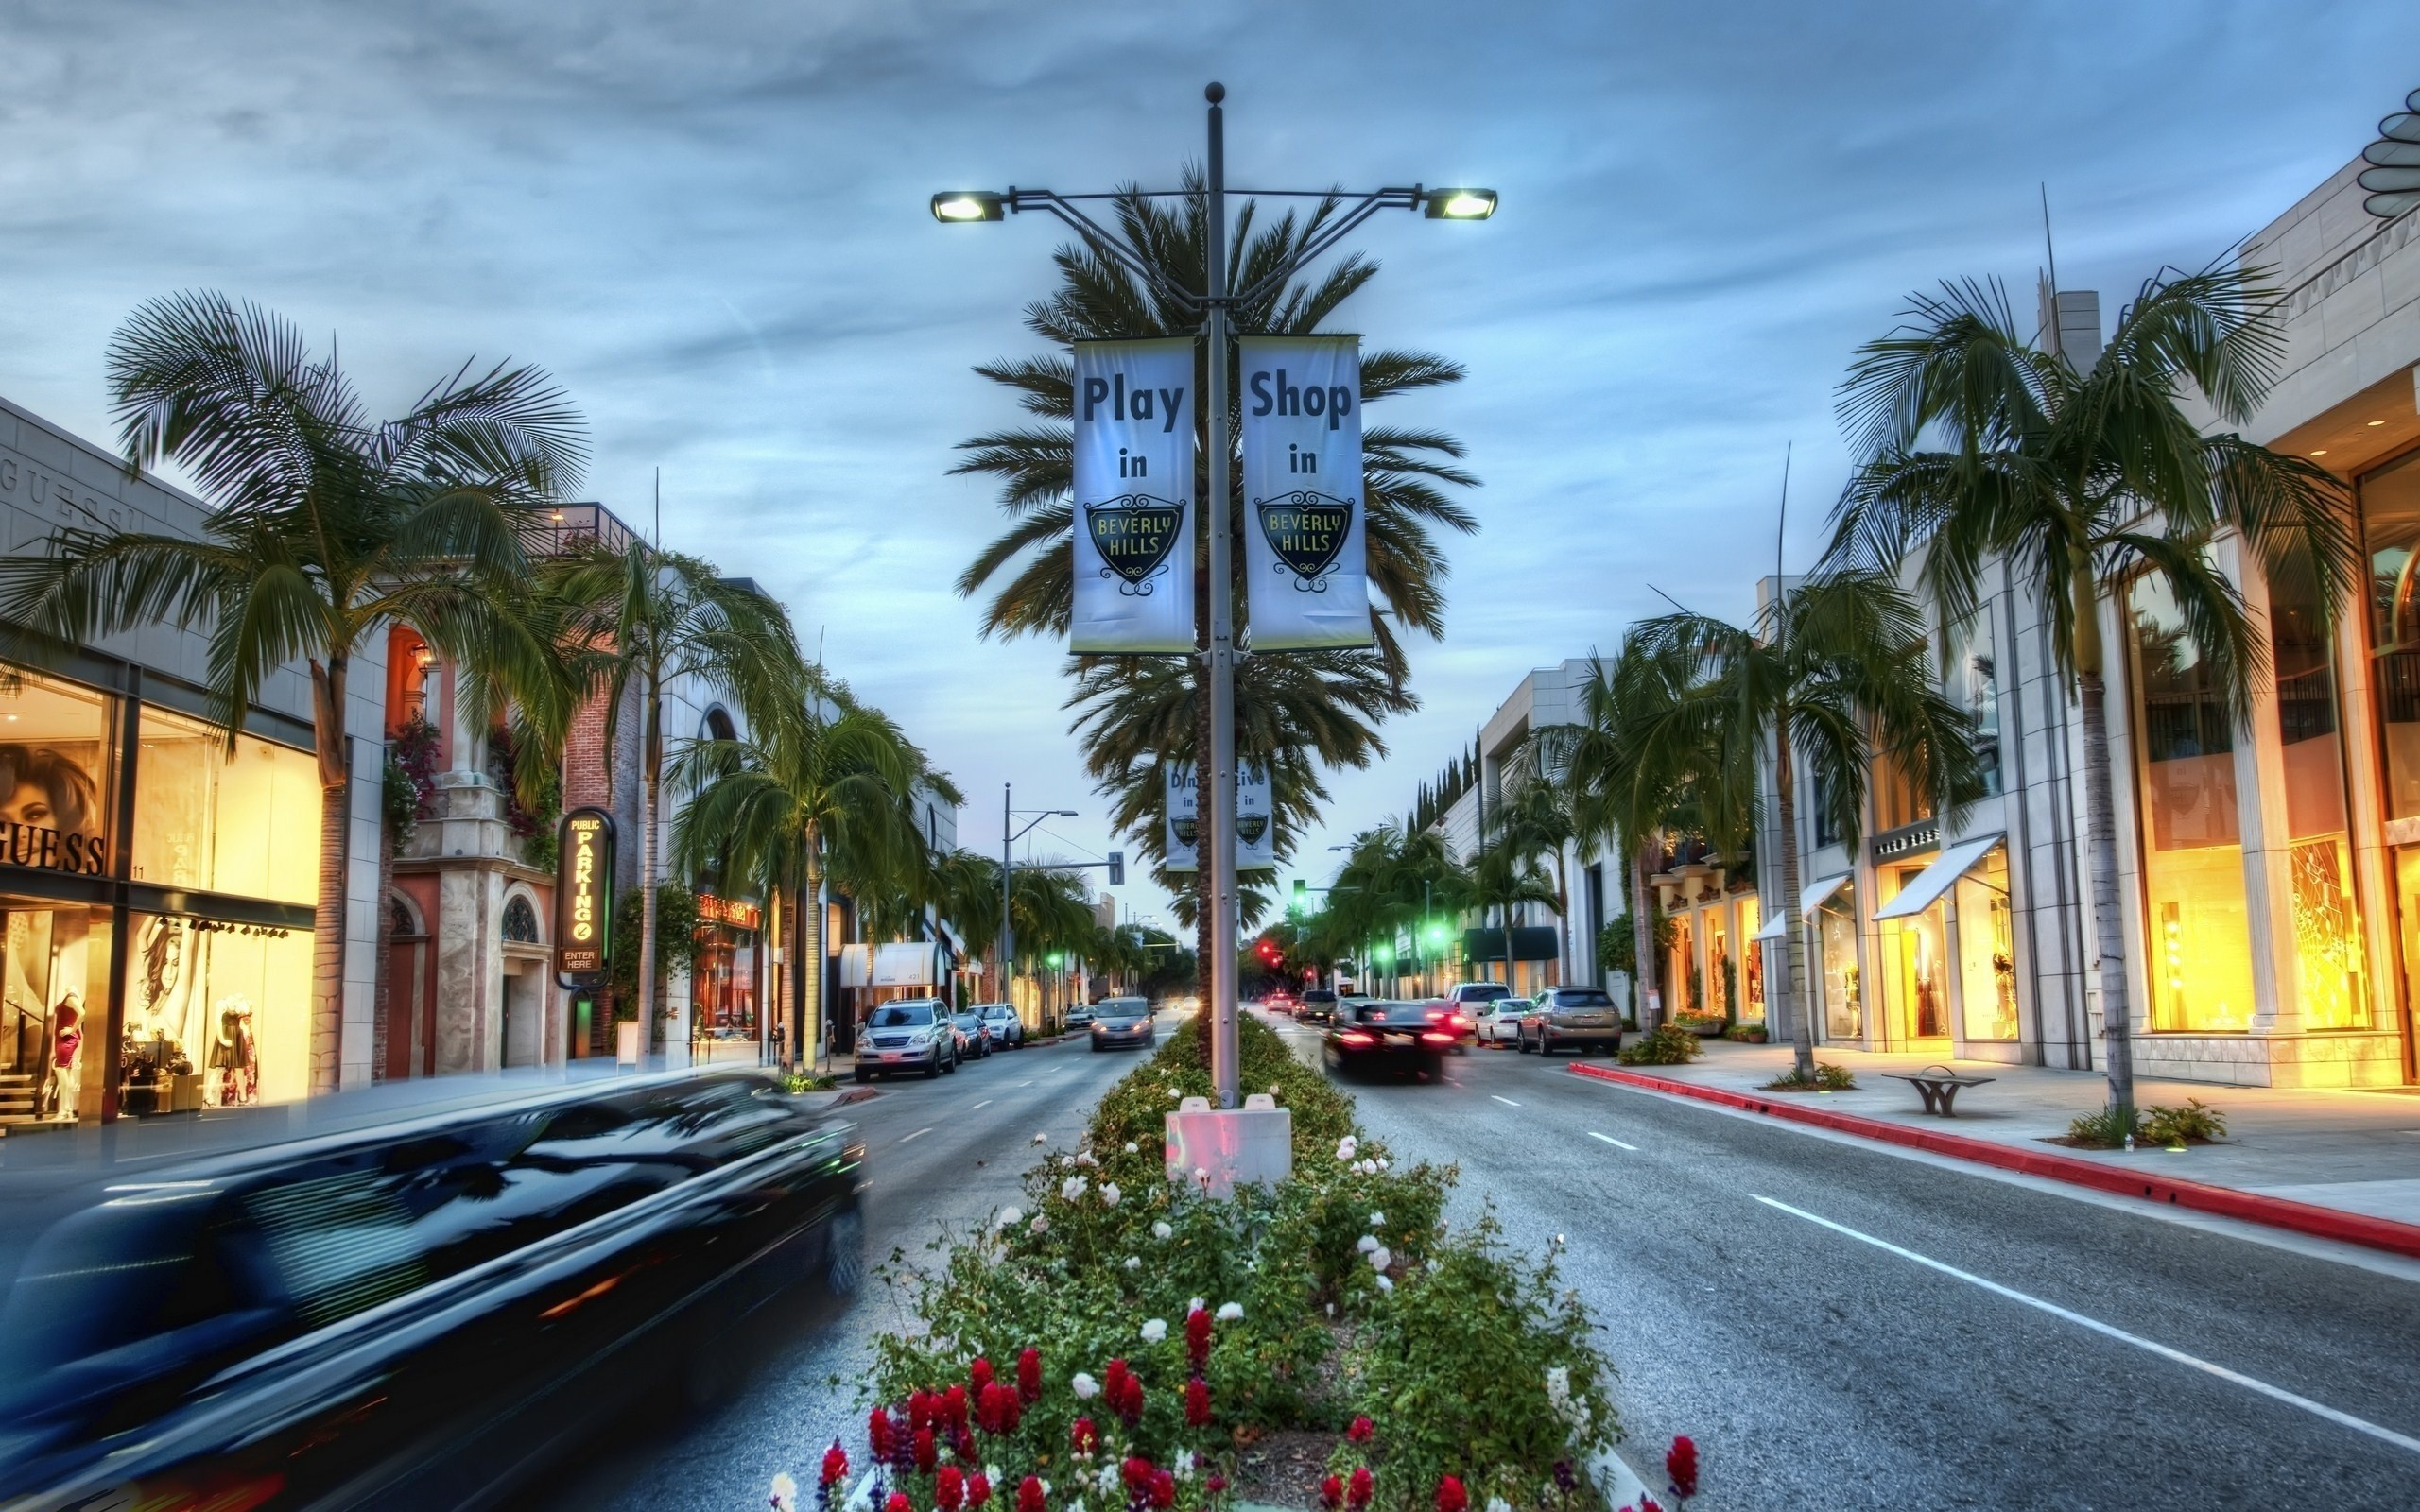 2560x1600 Wallpaper Road, Usa, Los angeles, Hollywood, Shop, California, Beverly hills